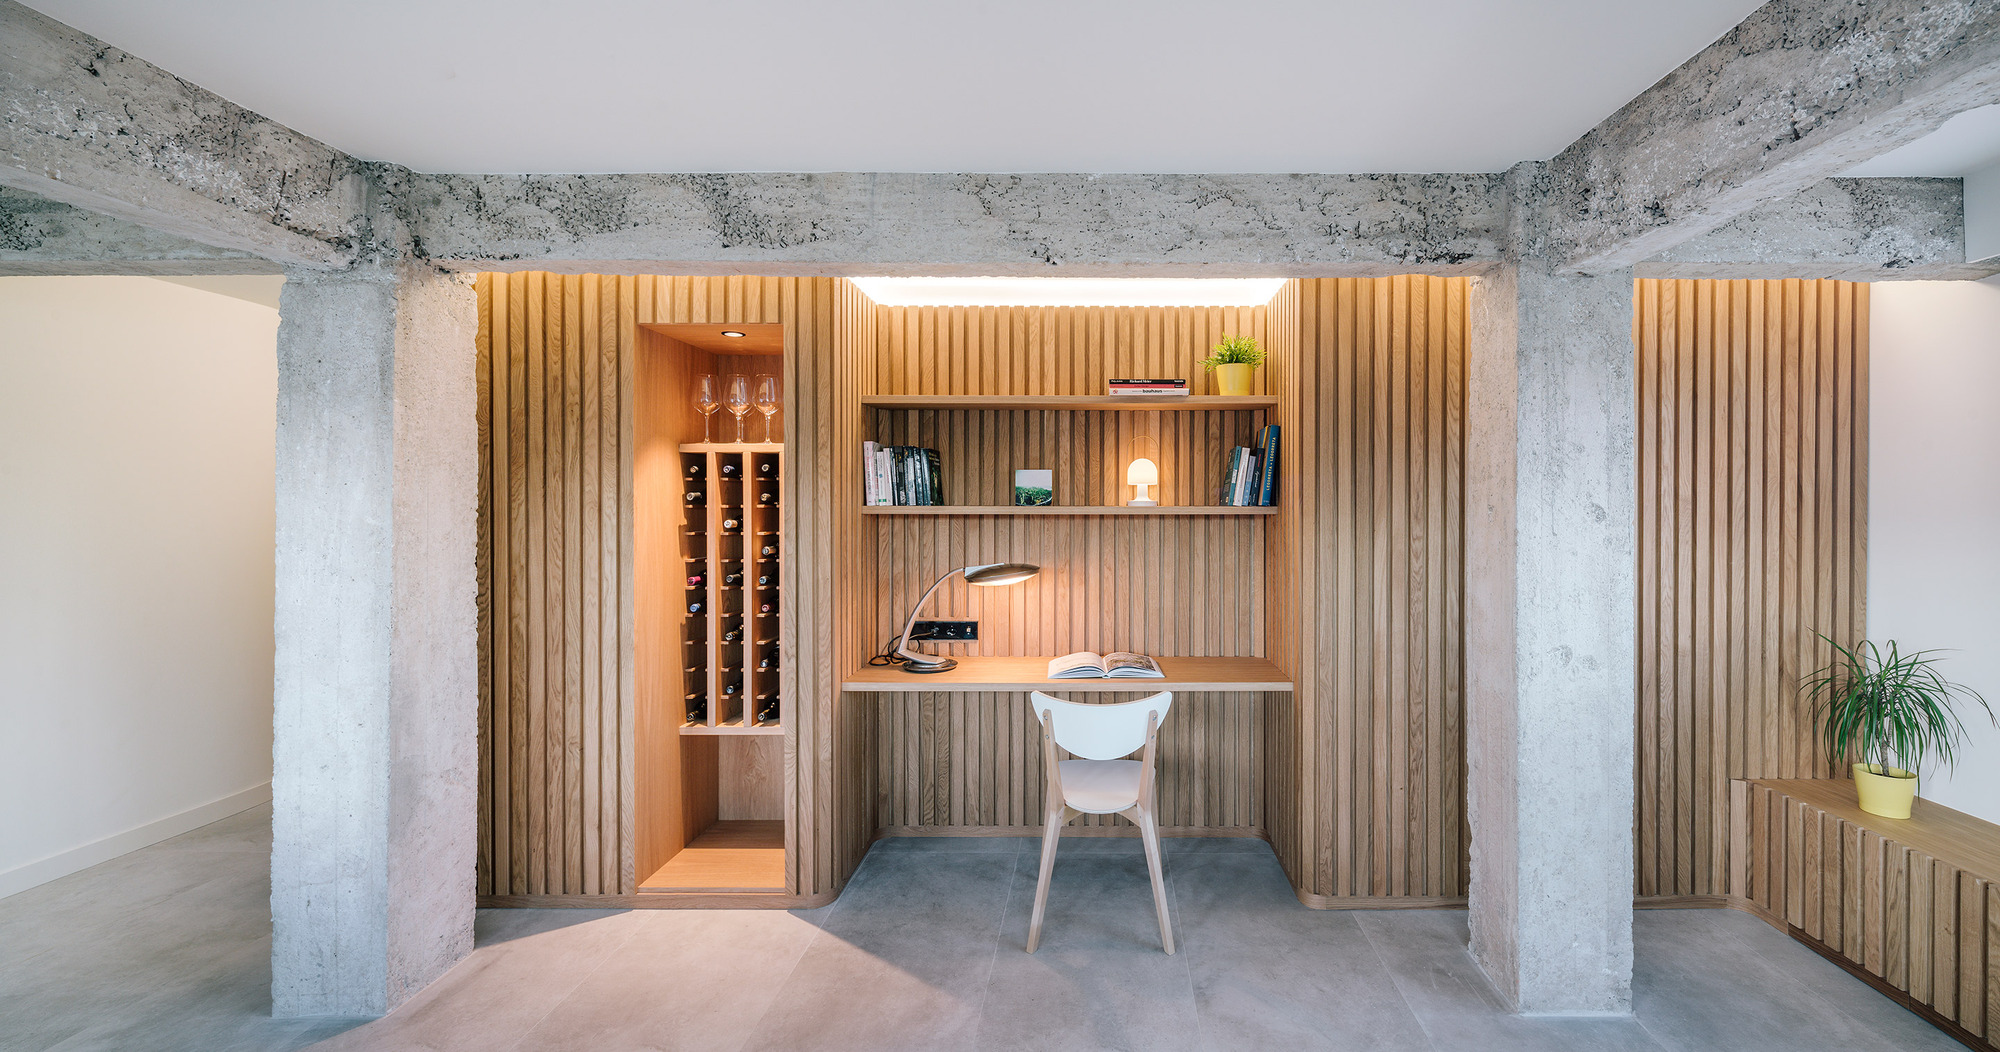 Custom wood walls and decor create a home offce while maximizing space inside the apartment